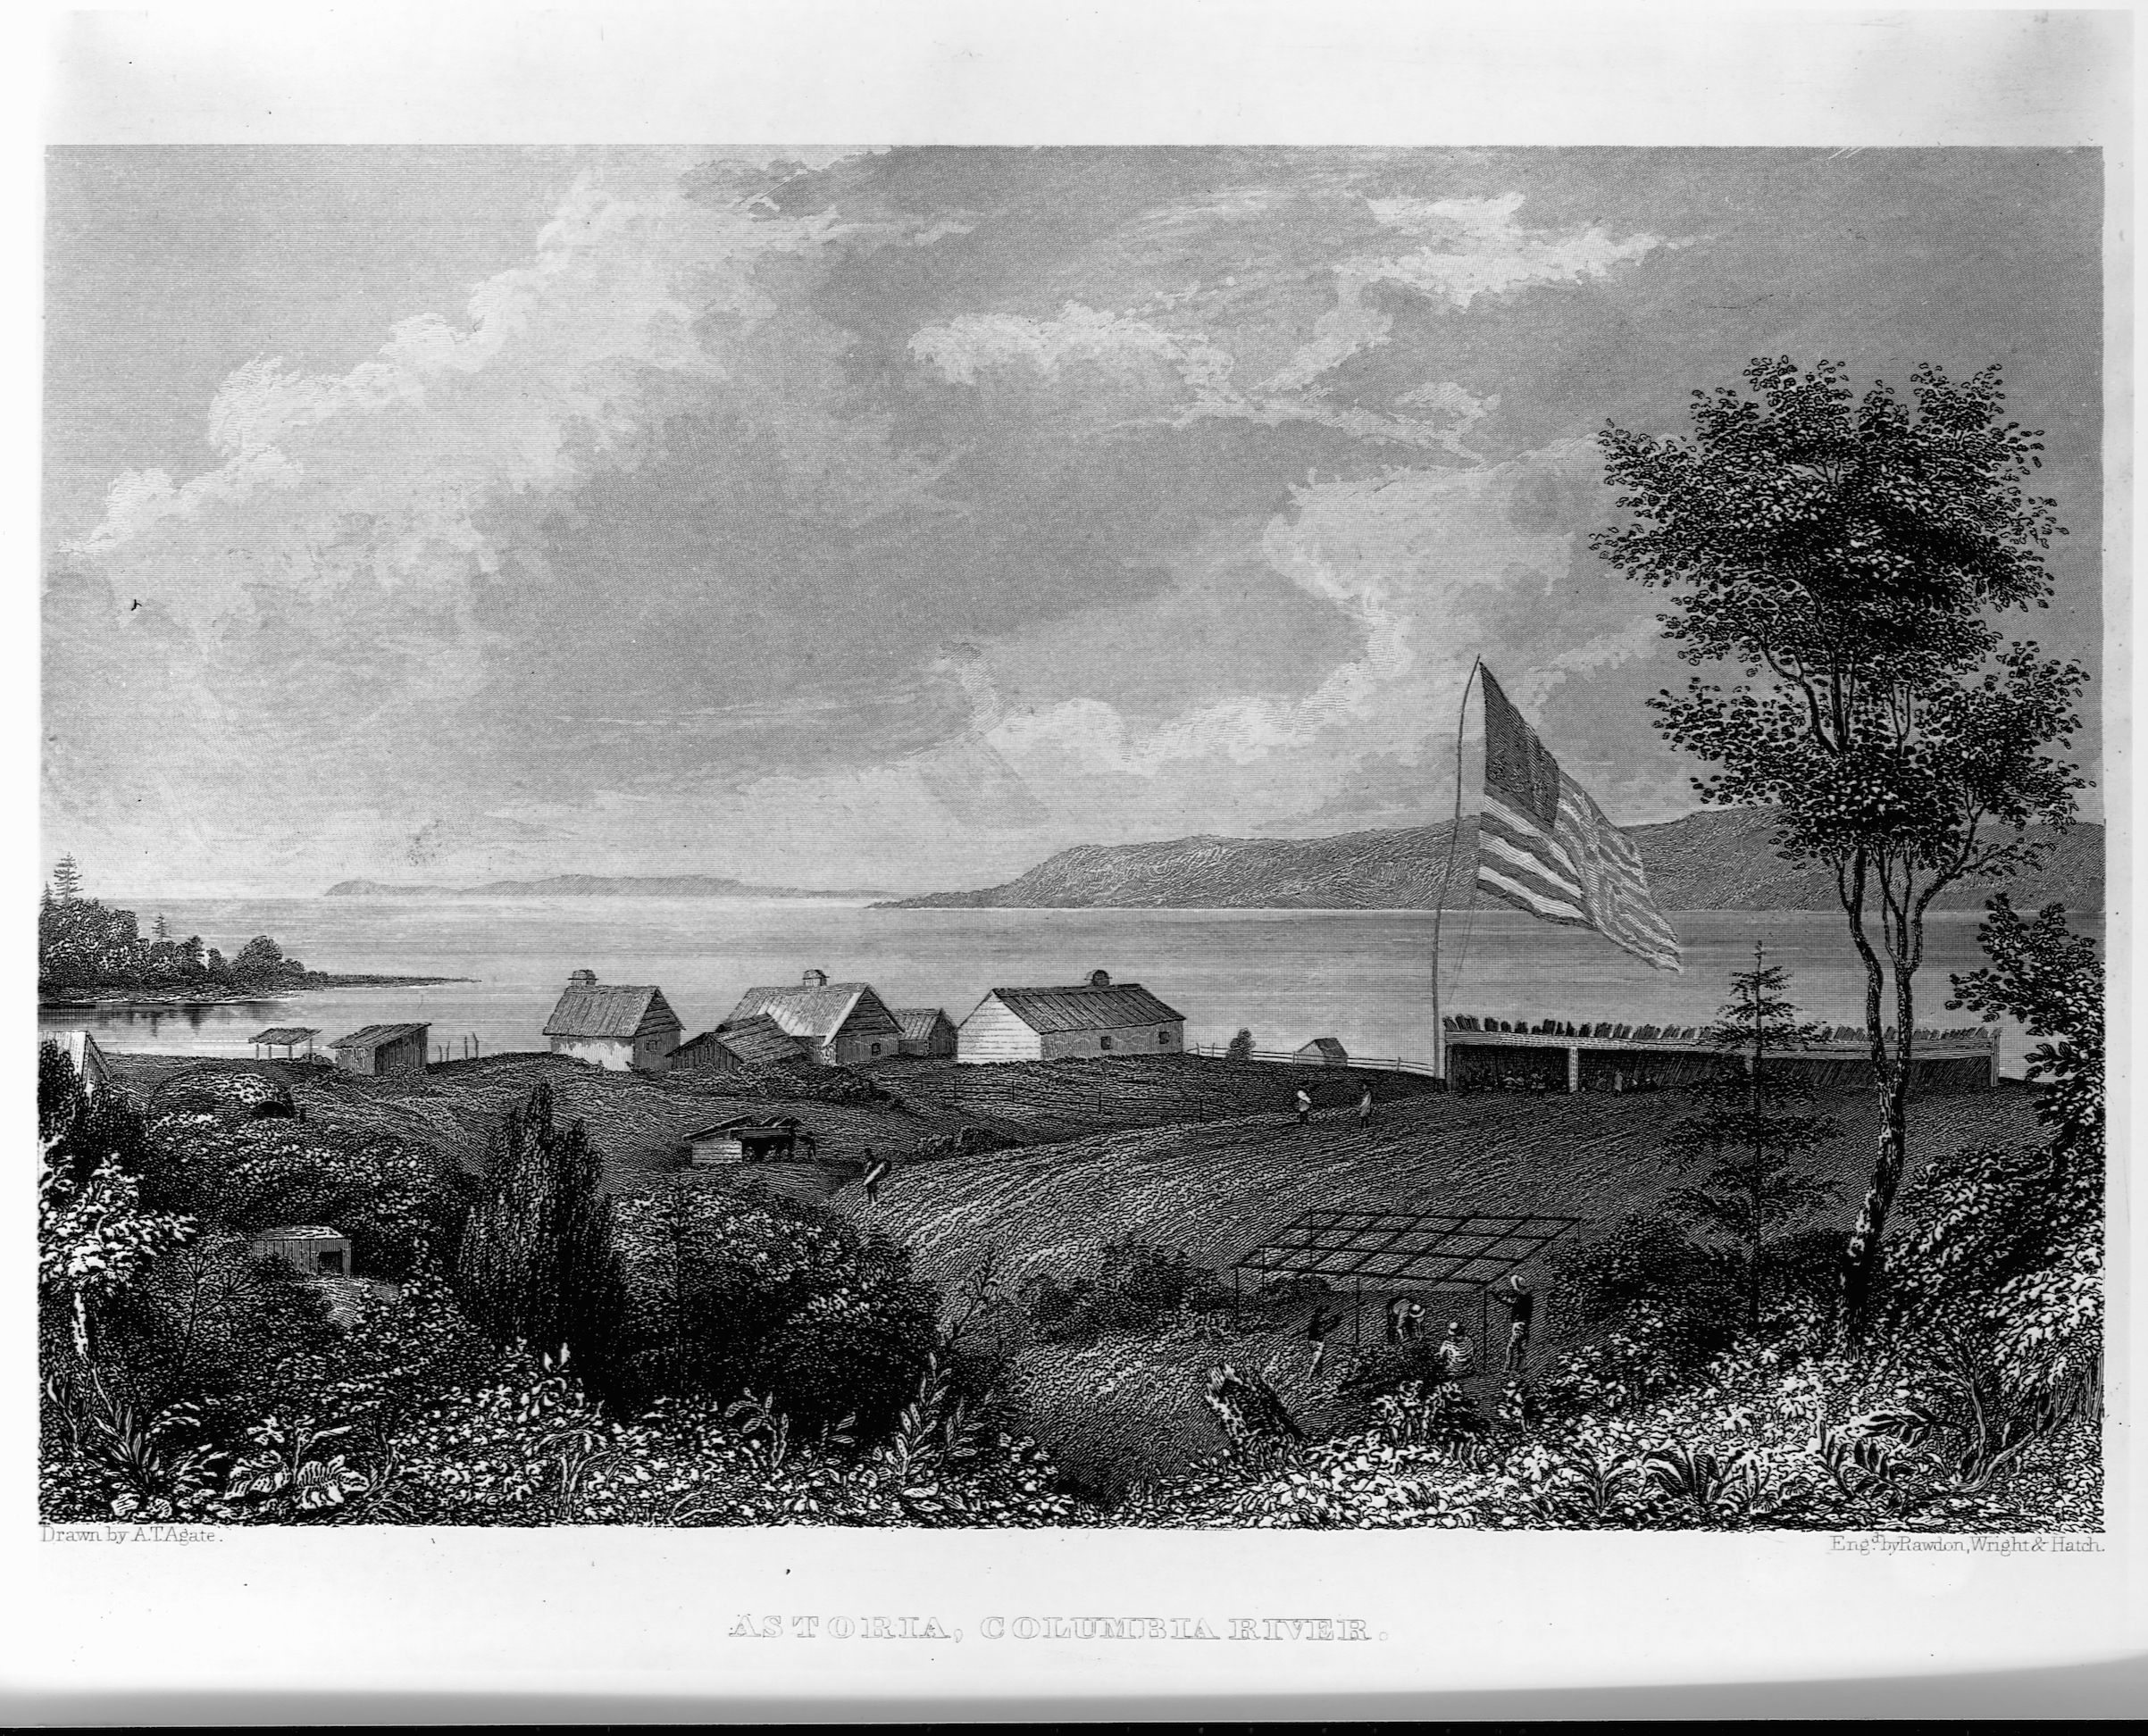 The small settlement of Astoria, Oregon, on the Columbia River, in the 1840s shortly after it was returned to U.S. control from the British, in an engraving appearing in Charles Wilkes' Narrative of the United States Exploring Expedition.